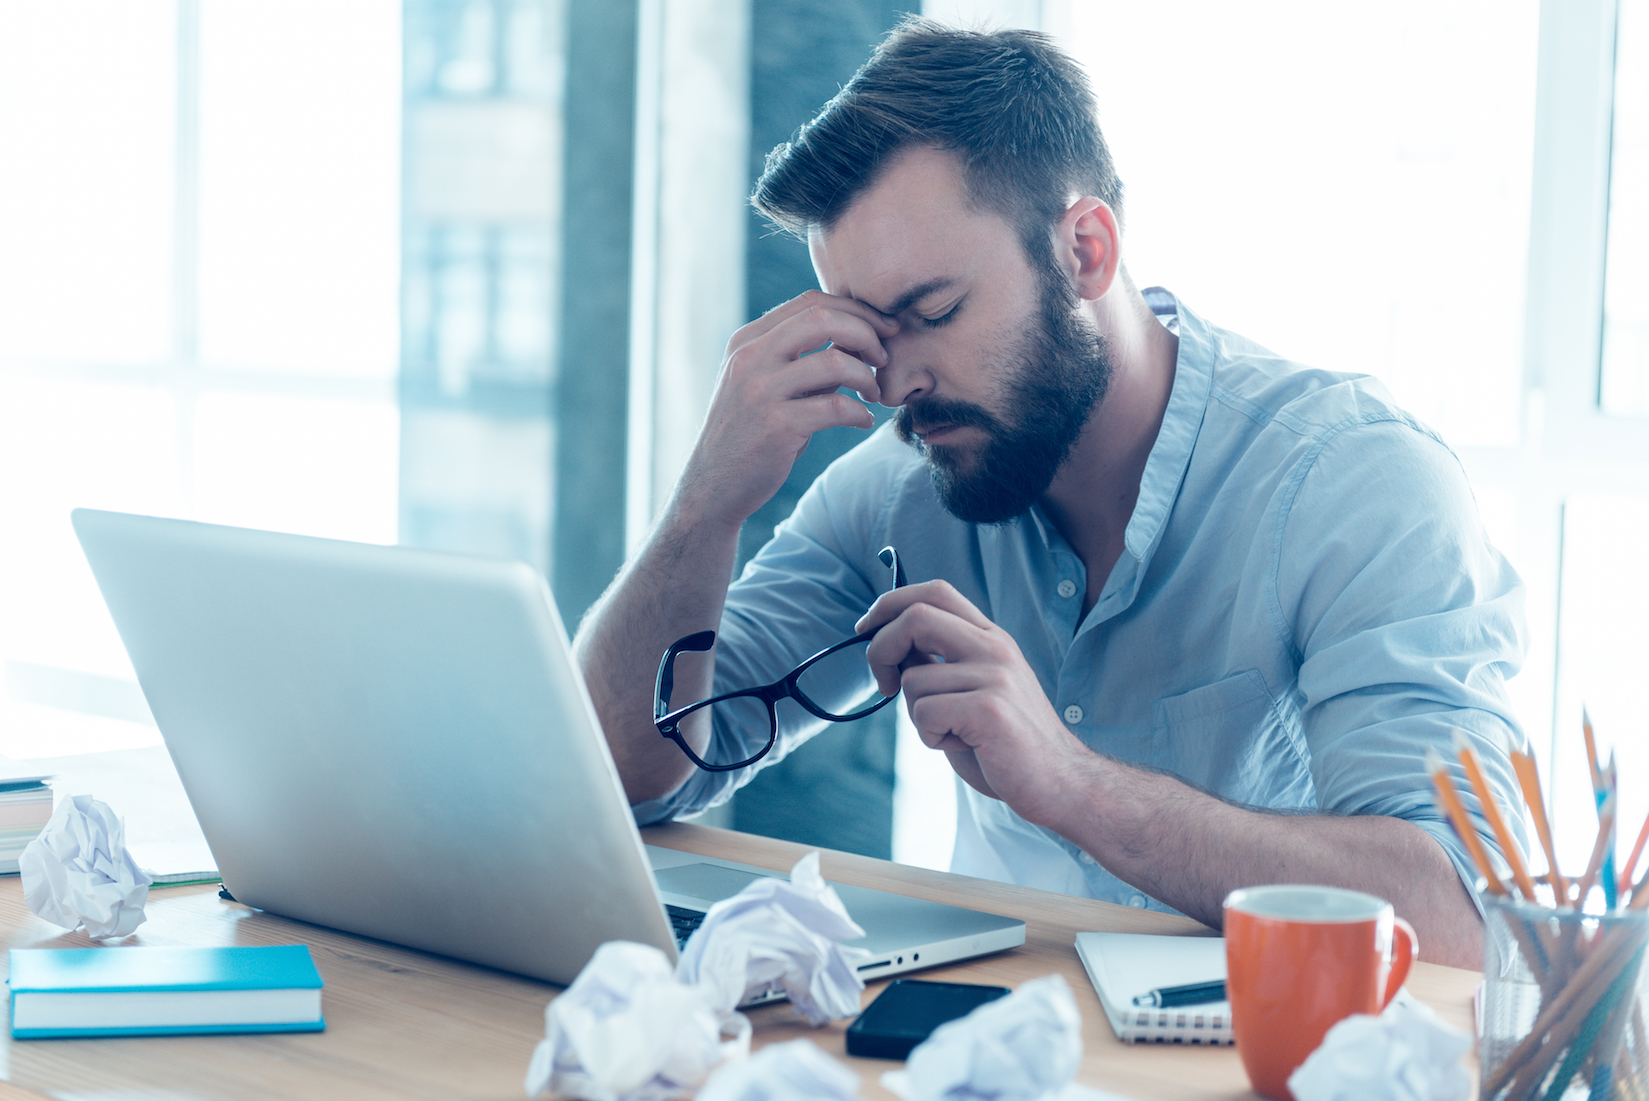 A new study has found that people who suffer from sleep deprivation feel isolated and are less inclined to socially engage with others.